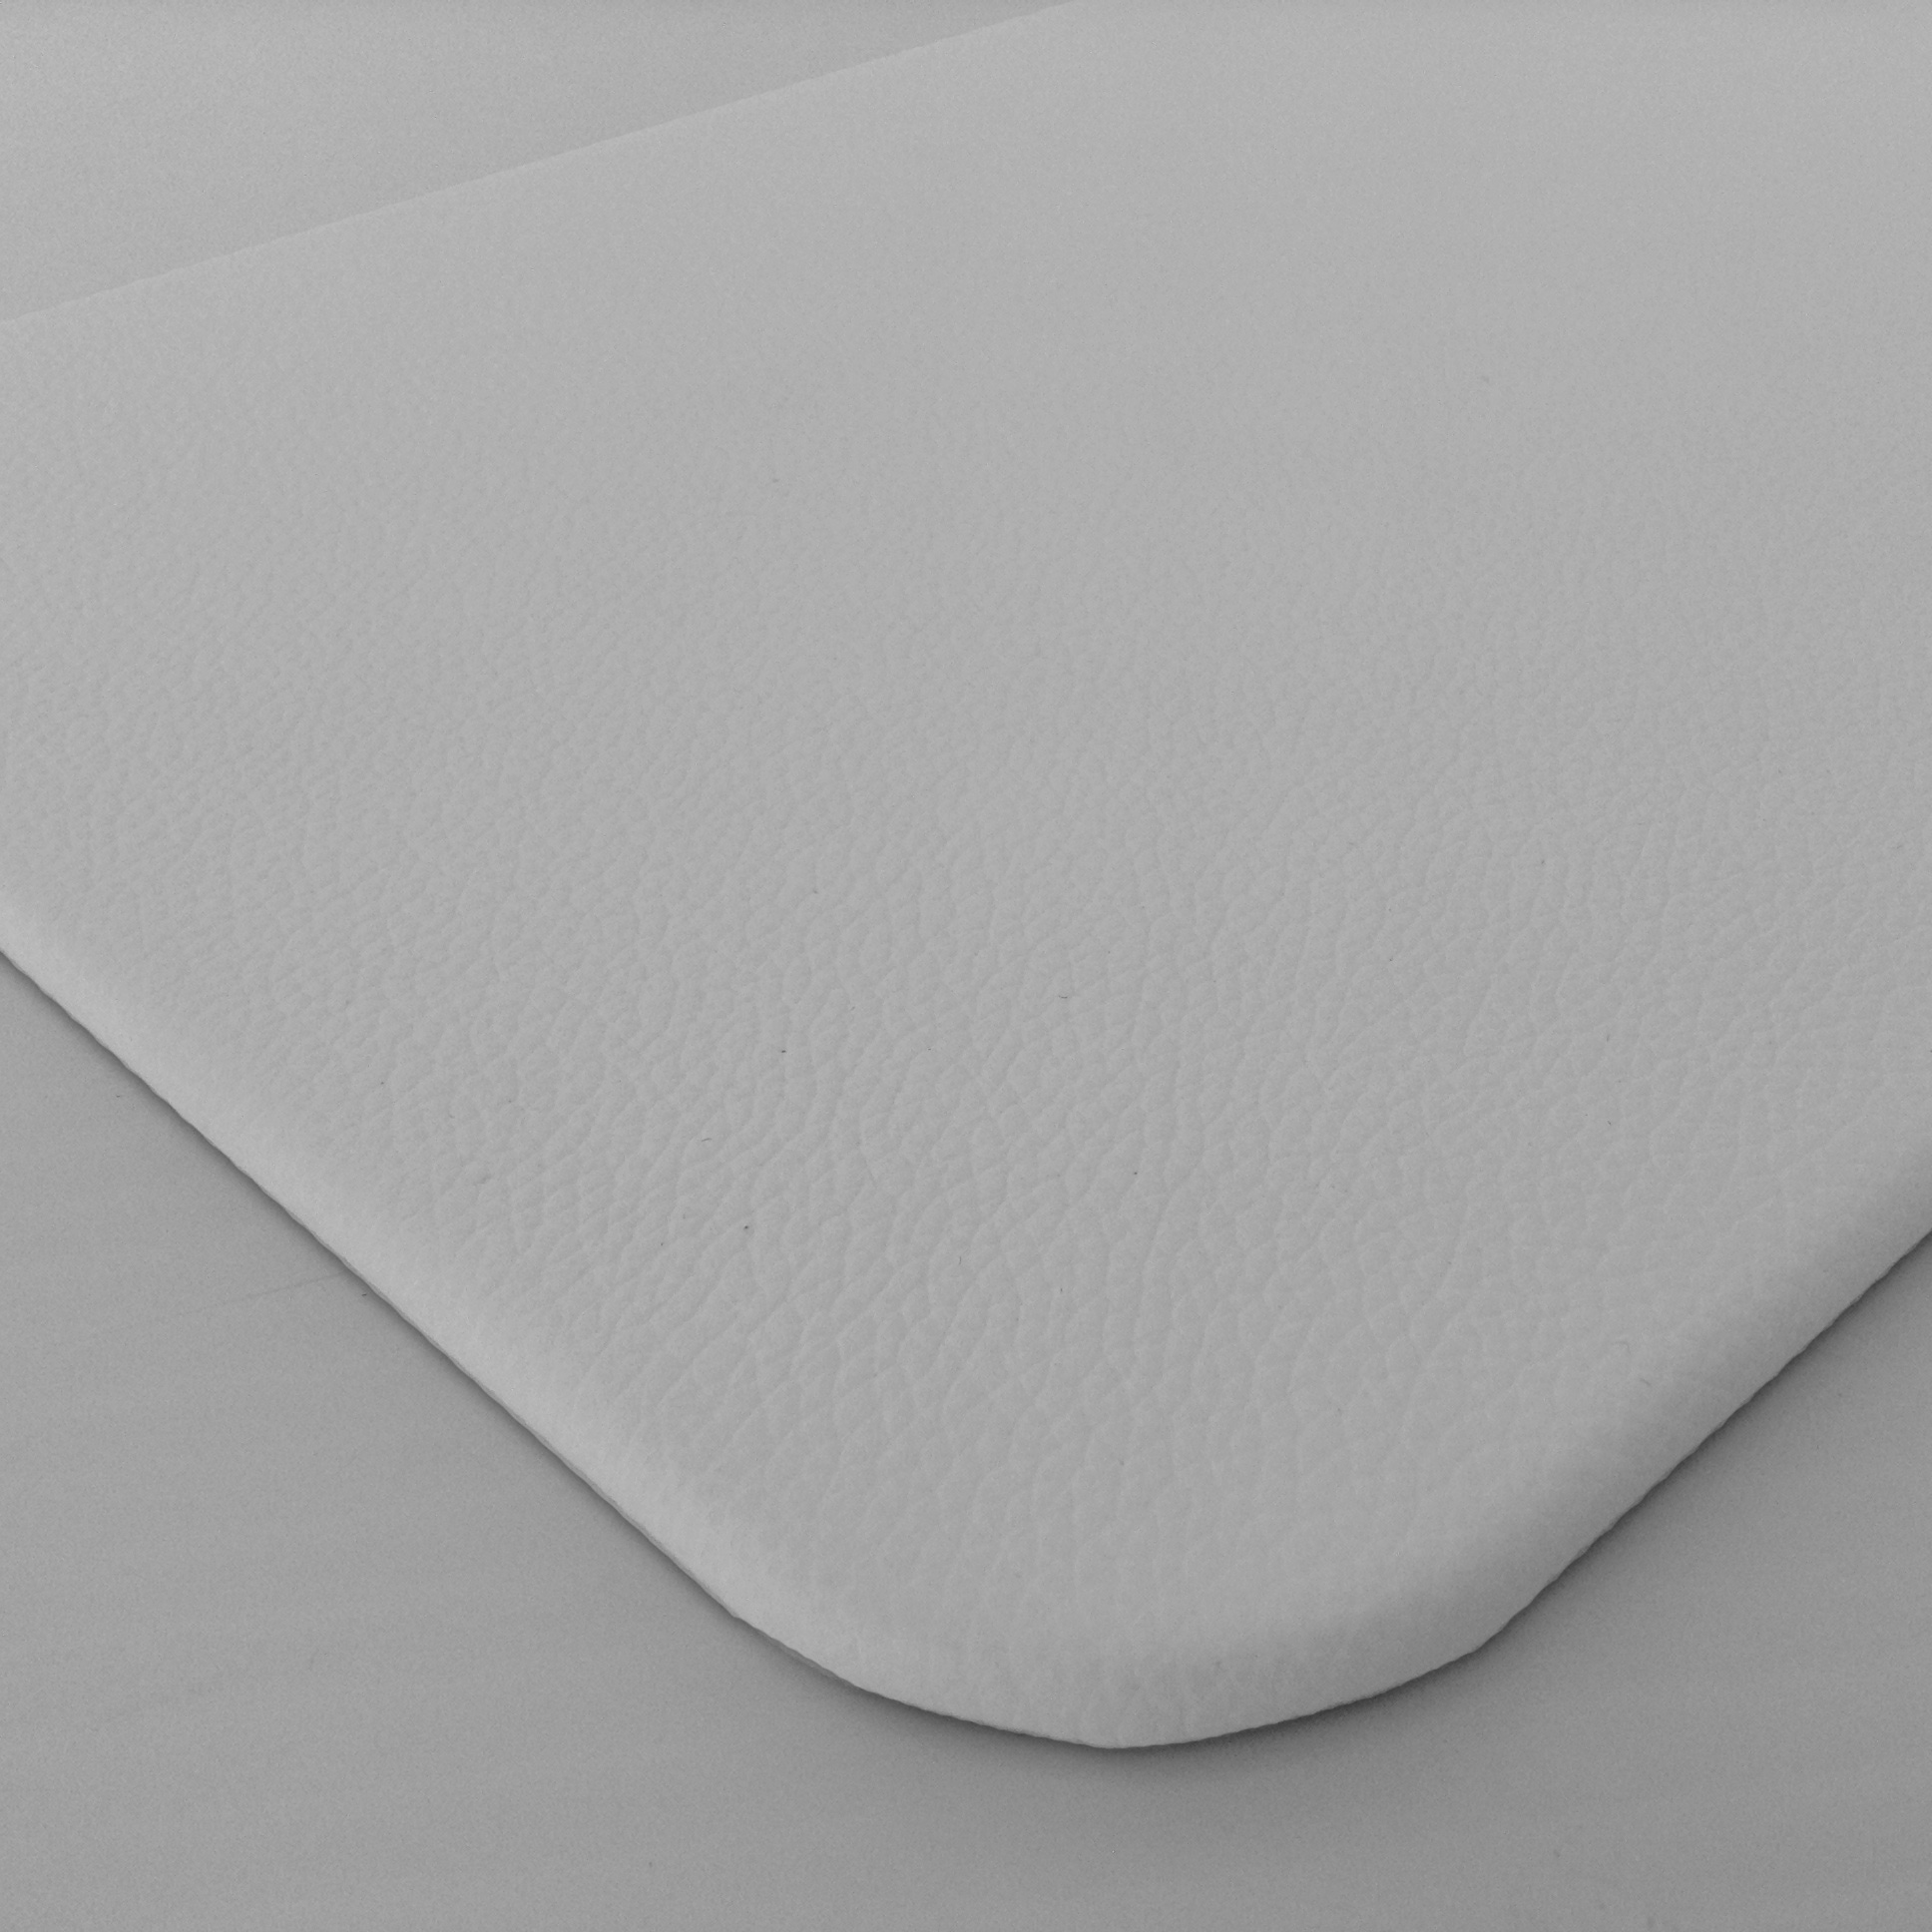 White Leather Desk Pad Genuine Leather Desktop Protection